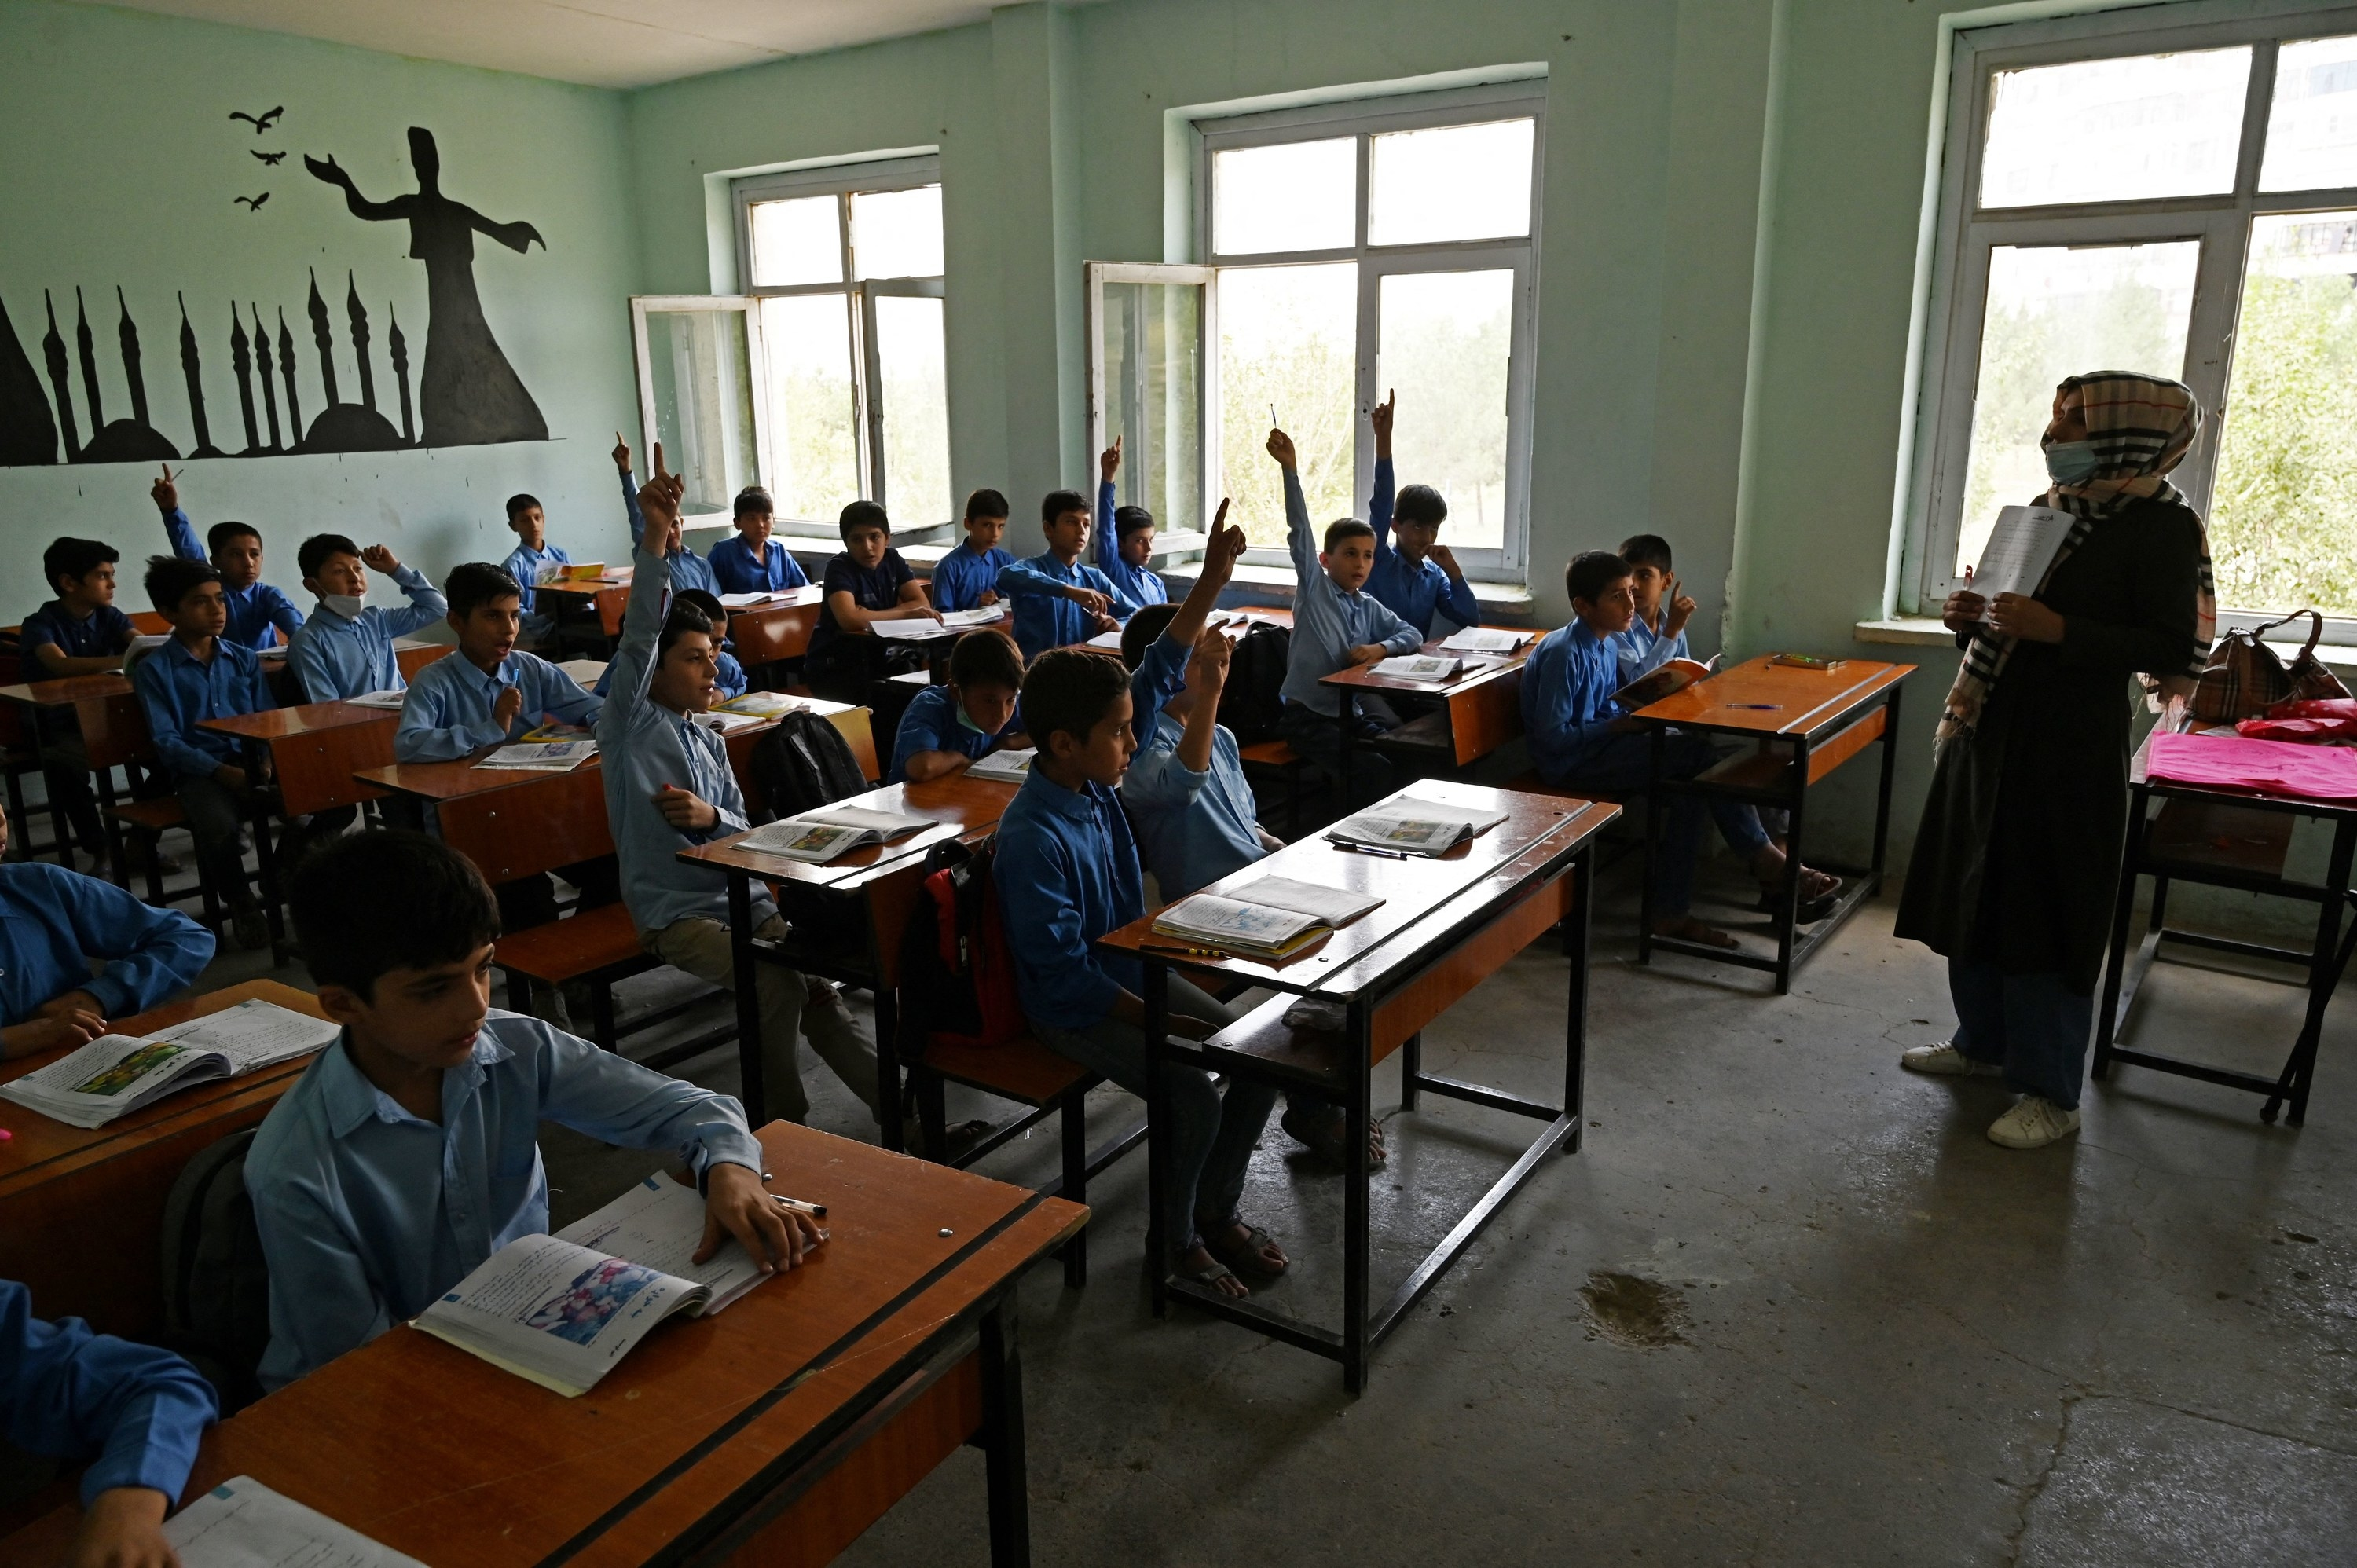 Afghan students participate in class at a middle school